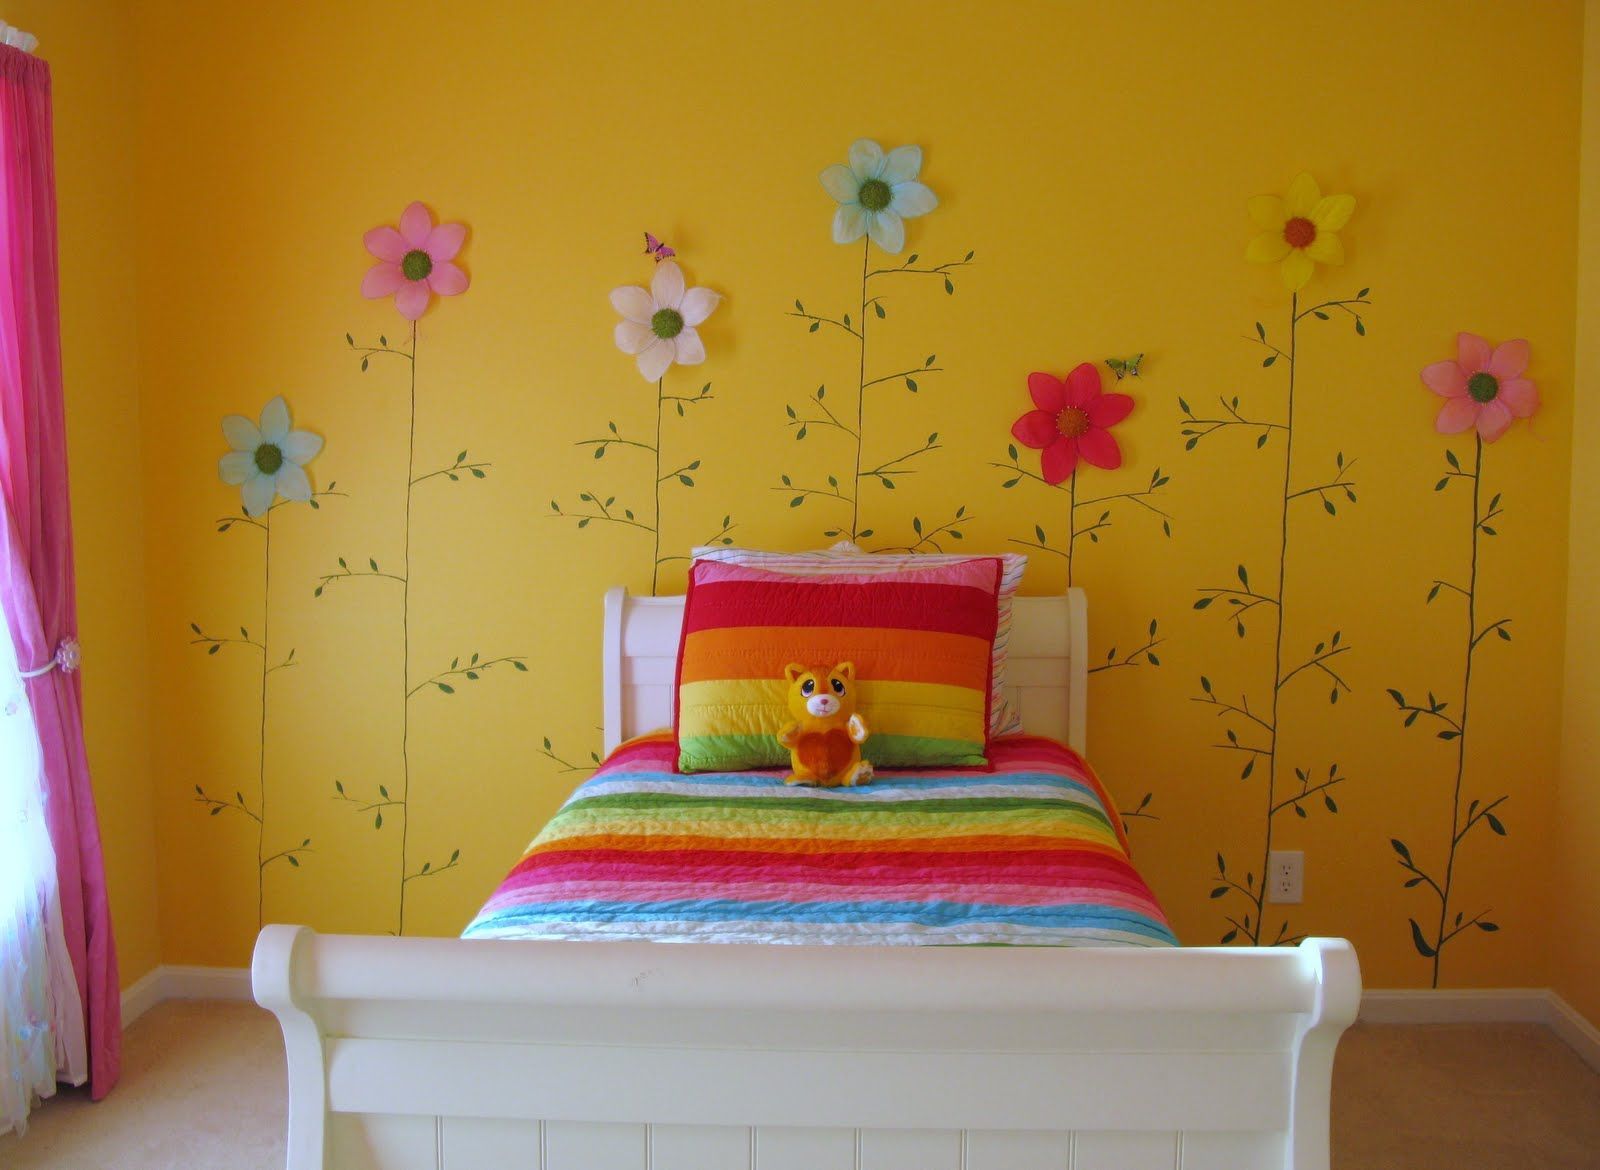 Kids Bedroom Yellow 5 main bedroom design trends for 2017 | room, flower and bedrooms